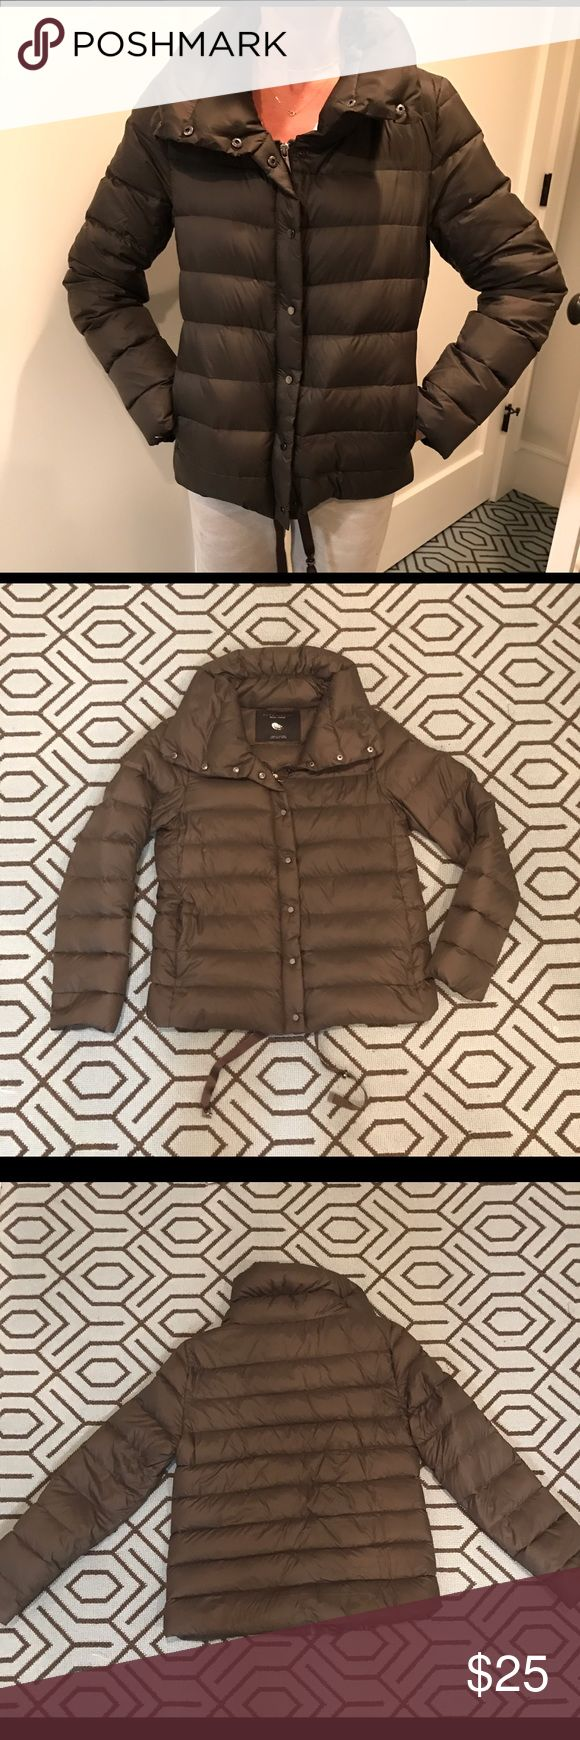 ZARA down jacket sz small Barely worn, ZARA, brown, lightweight down jacket. A very faint spot on left upper arm as shown, abt 1/4 centimeter. There are pulls at the bottom to tighten the waist. Jackets & Coats